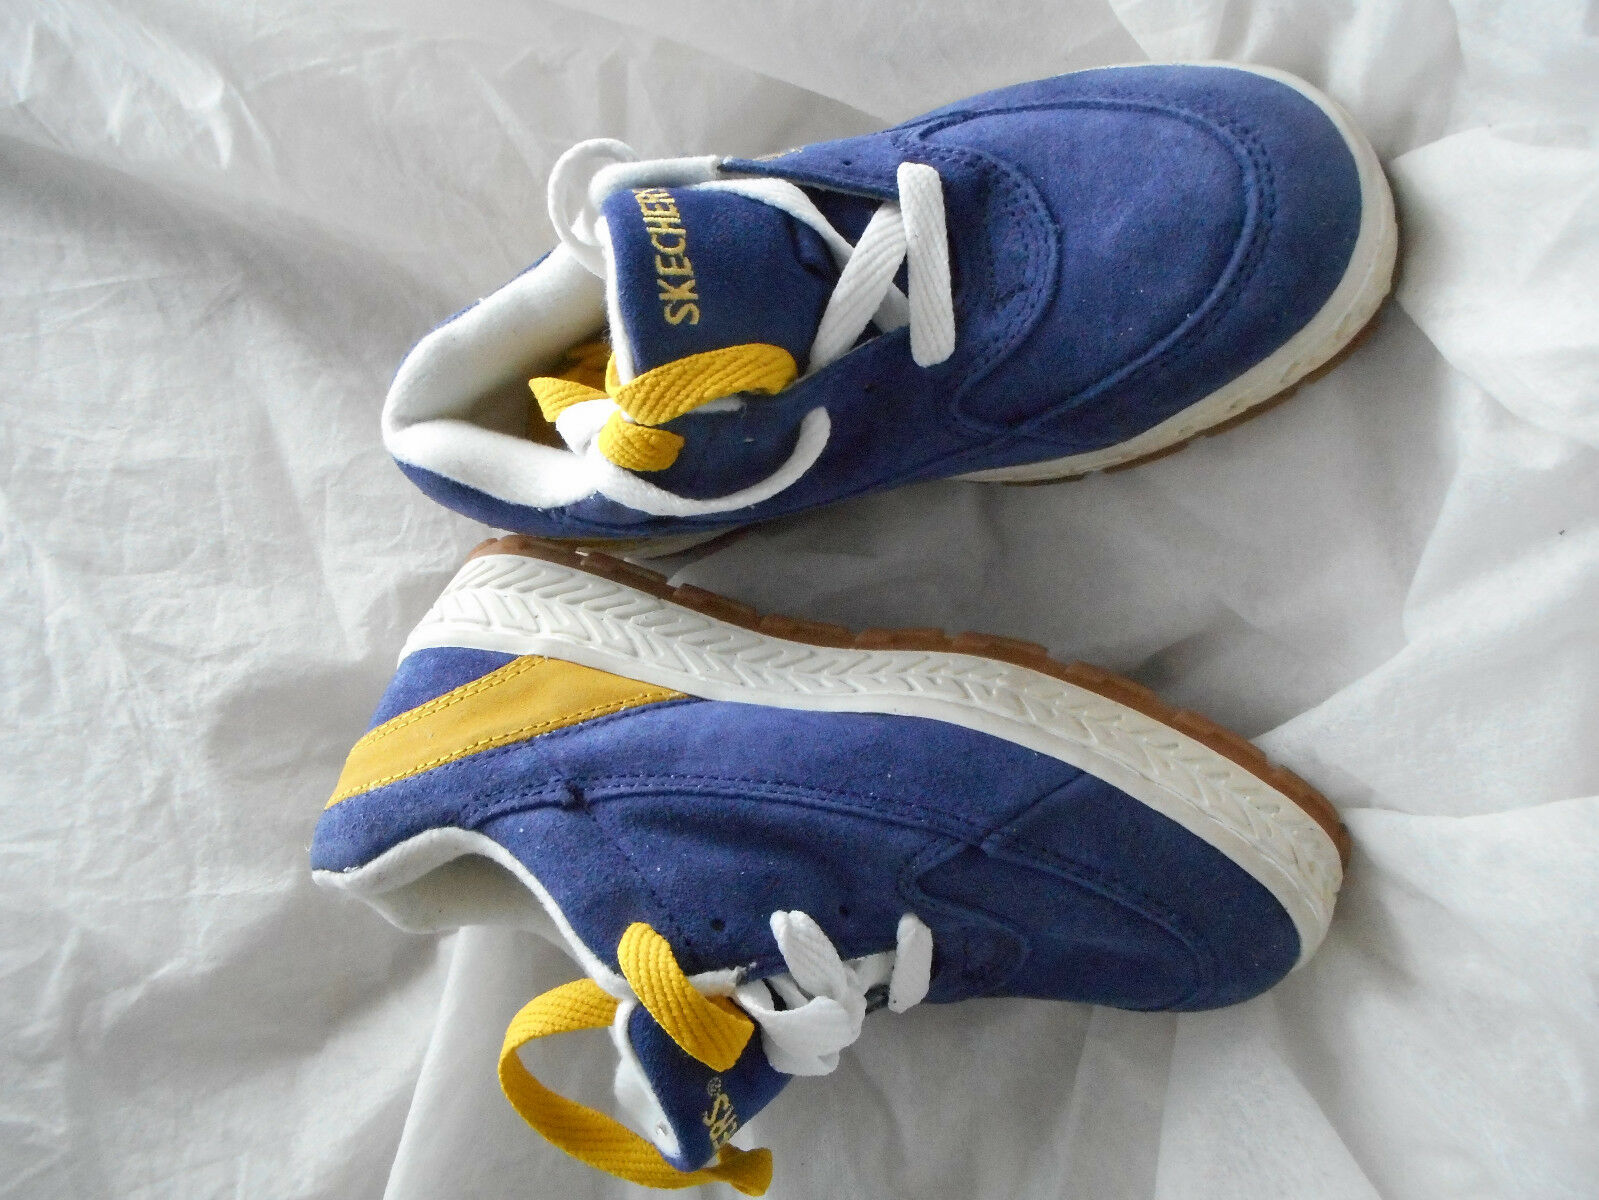 VINTAGE Suede SKECHERS Navy bluee YELLOW Lace Lace Lace Platform Loafer Trainers Sneakers 3 35ce3b